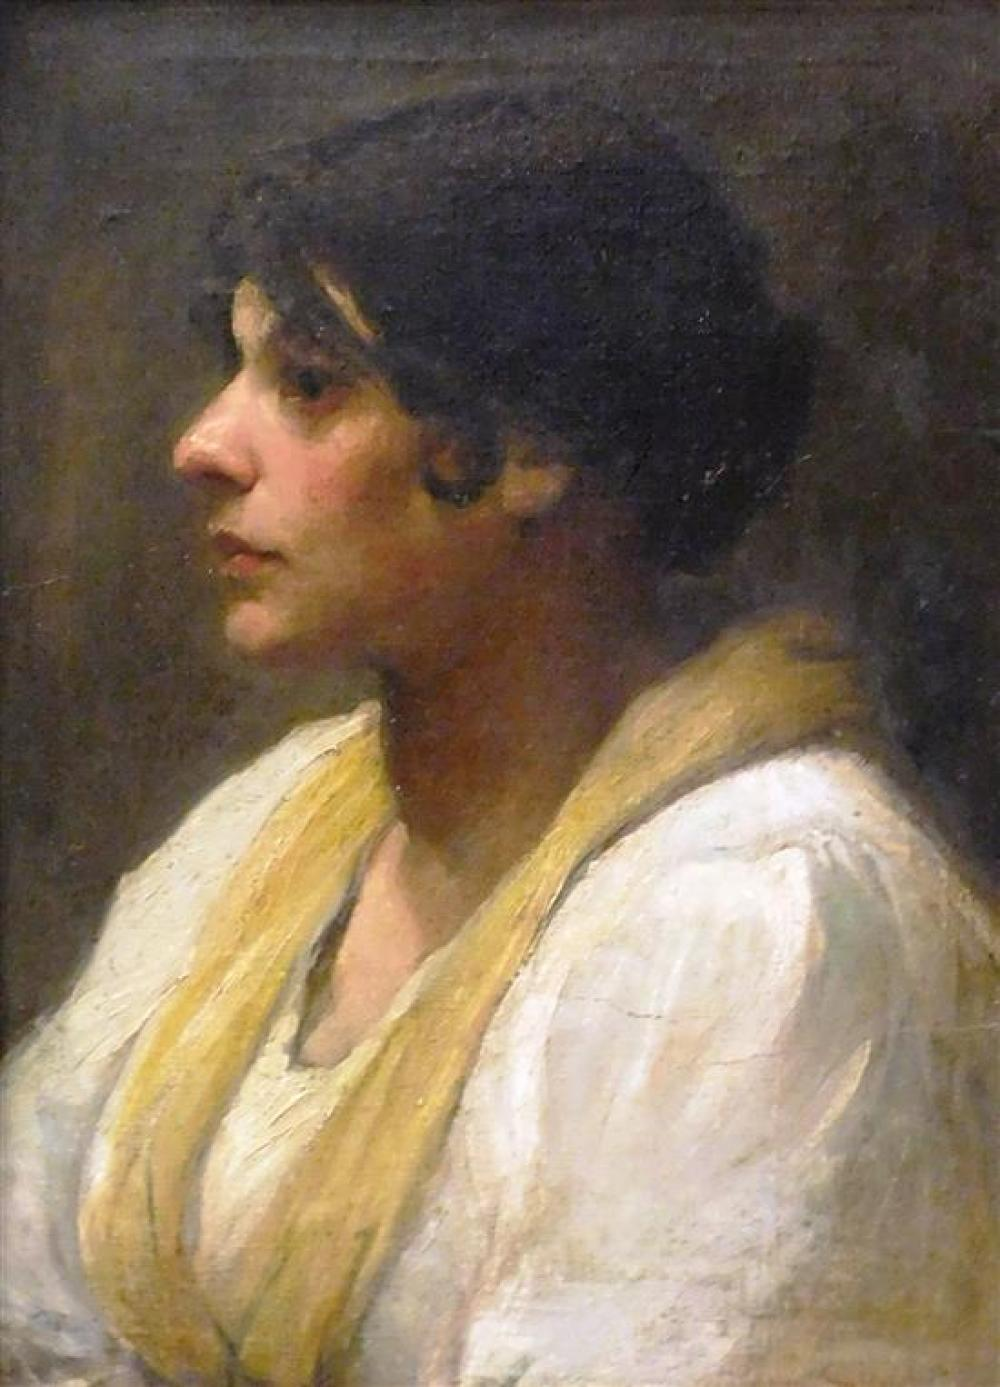 19th C. oil on canvas portrait of Mediterranean woman in profile, indistinctly signed and dated 1896 in red lower right, depicts oli...